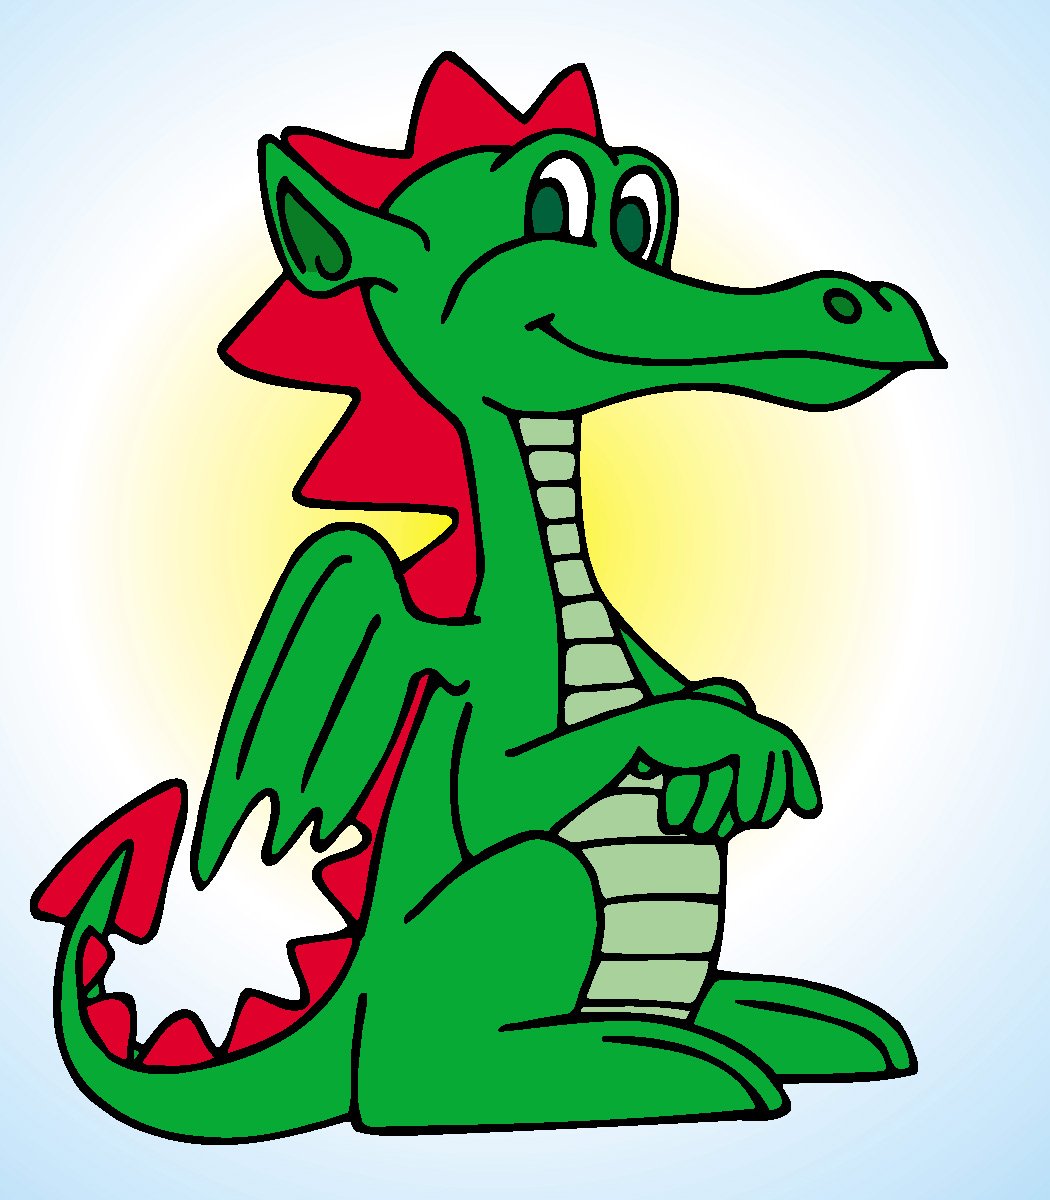 Chinese dragon clipart for kids free Images For > Chinese Dragon Clip Art For Kids - Cliparts.co free